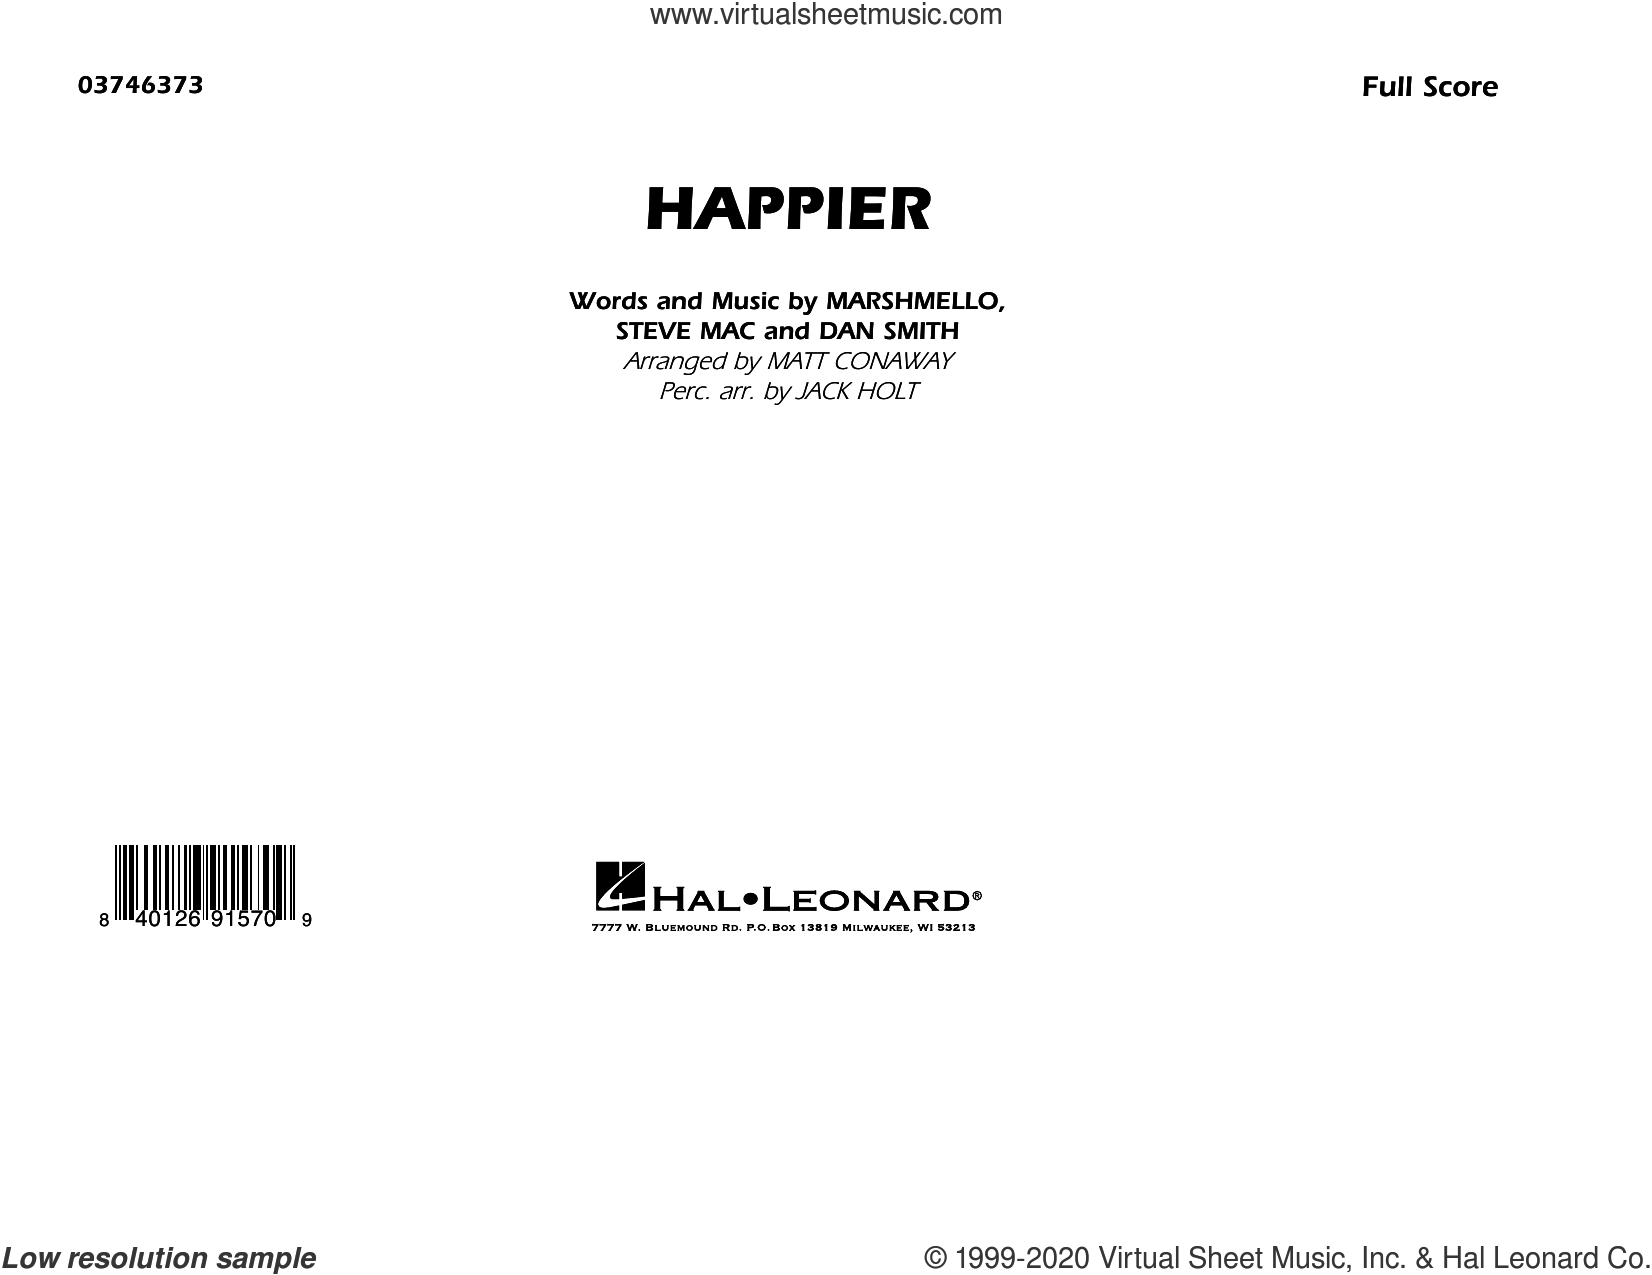 Happier (arr. Matt Conaway and Jack Holt) (COMPLETE) sheet music for marching band by Matt Conaway, Dan Smith, Jack Holt, Marshmello, Marshmello & Bastille and Steve Mac, intermediate skill level